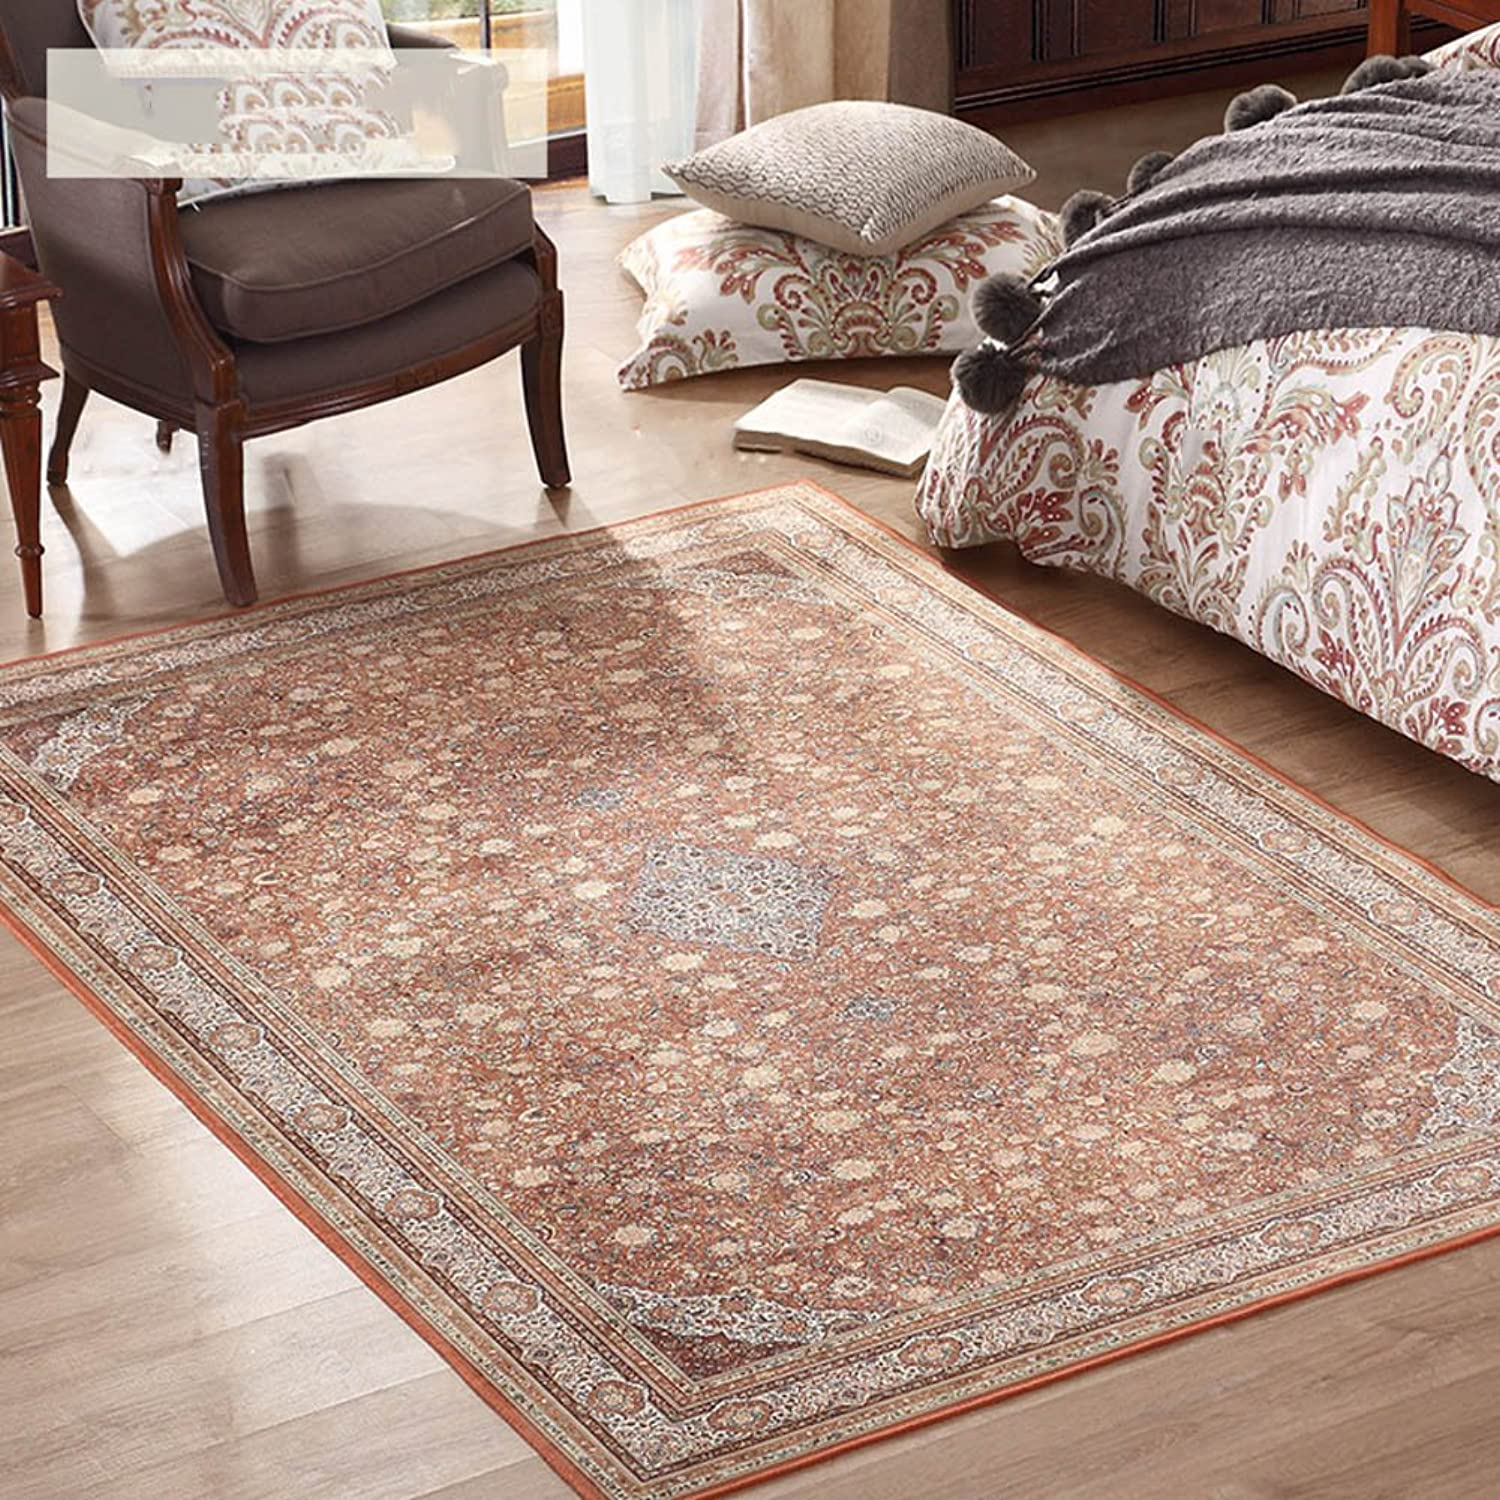 SE7VEN Living Room Pastoral Wind Carpet Office for The Vestibule Doors mat Bedside Carpets for Bedroom-E 80x125cm(31x49inch)